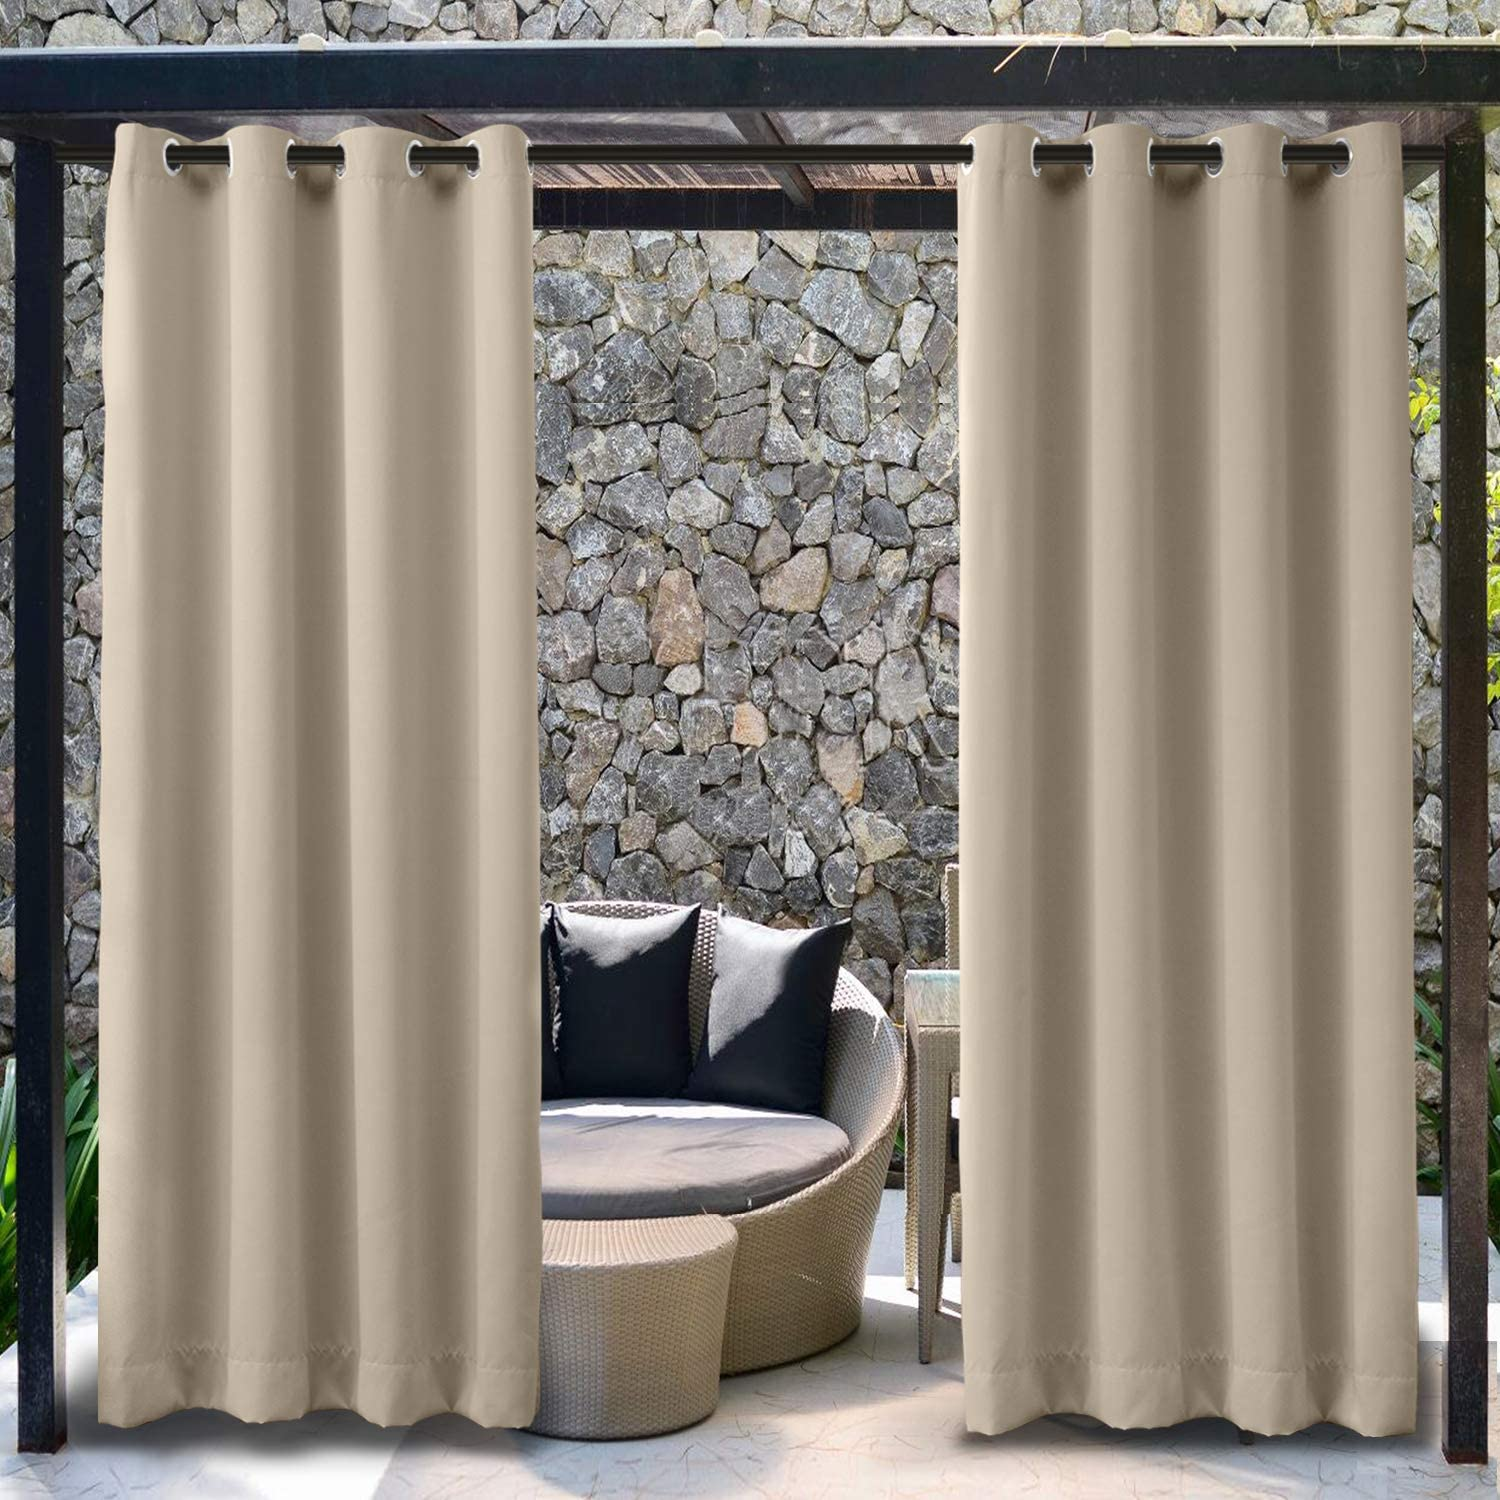 TWOPAGES Outdoor Waterproof Curtain Blackout Rustproof Grommet Curtain Beige Thermal Insulated Curtain Extra Wide Drape for Patio (1 Panel, 150 x 96 Inches)